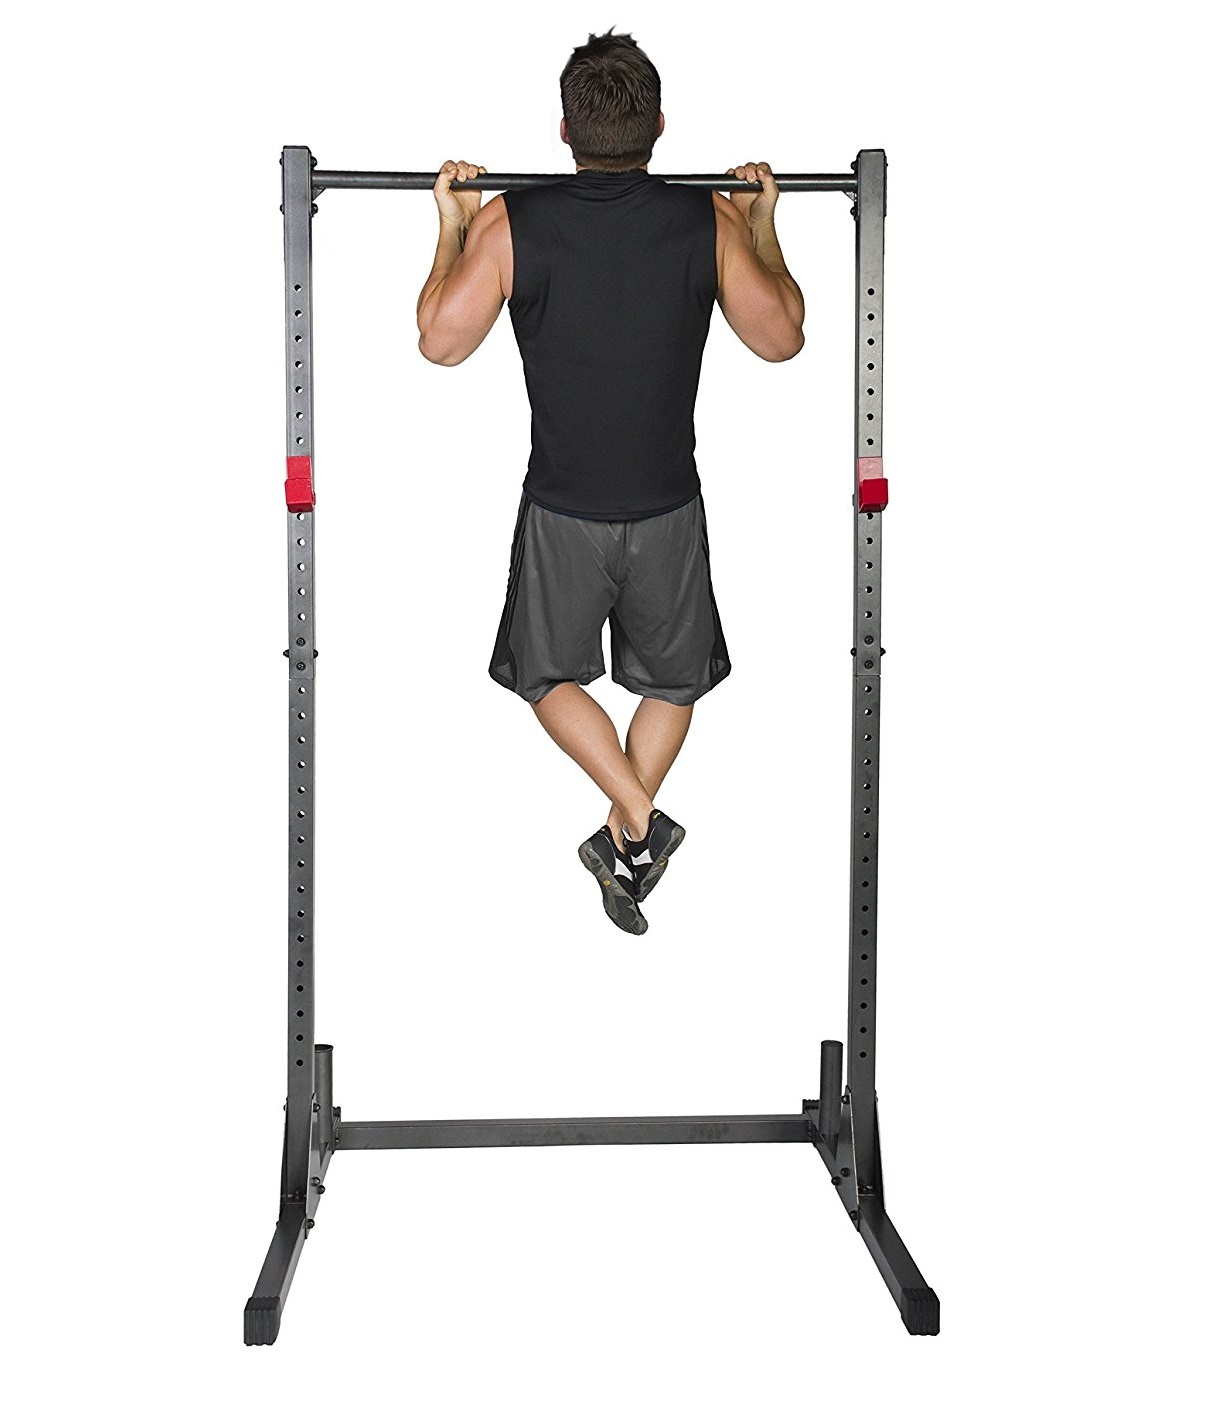 Squat Rack for Sale | Squat and Bench Press Rack | Cheap Squat Rack for Sale